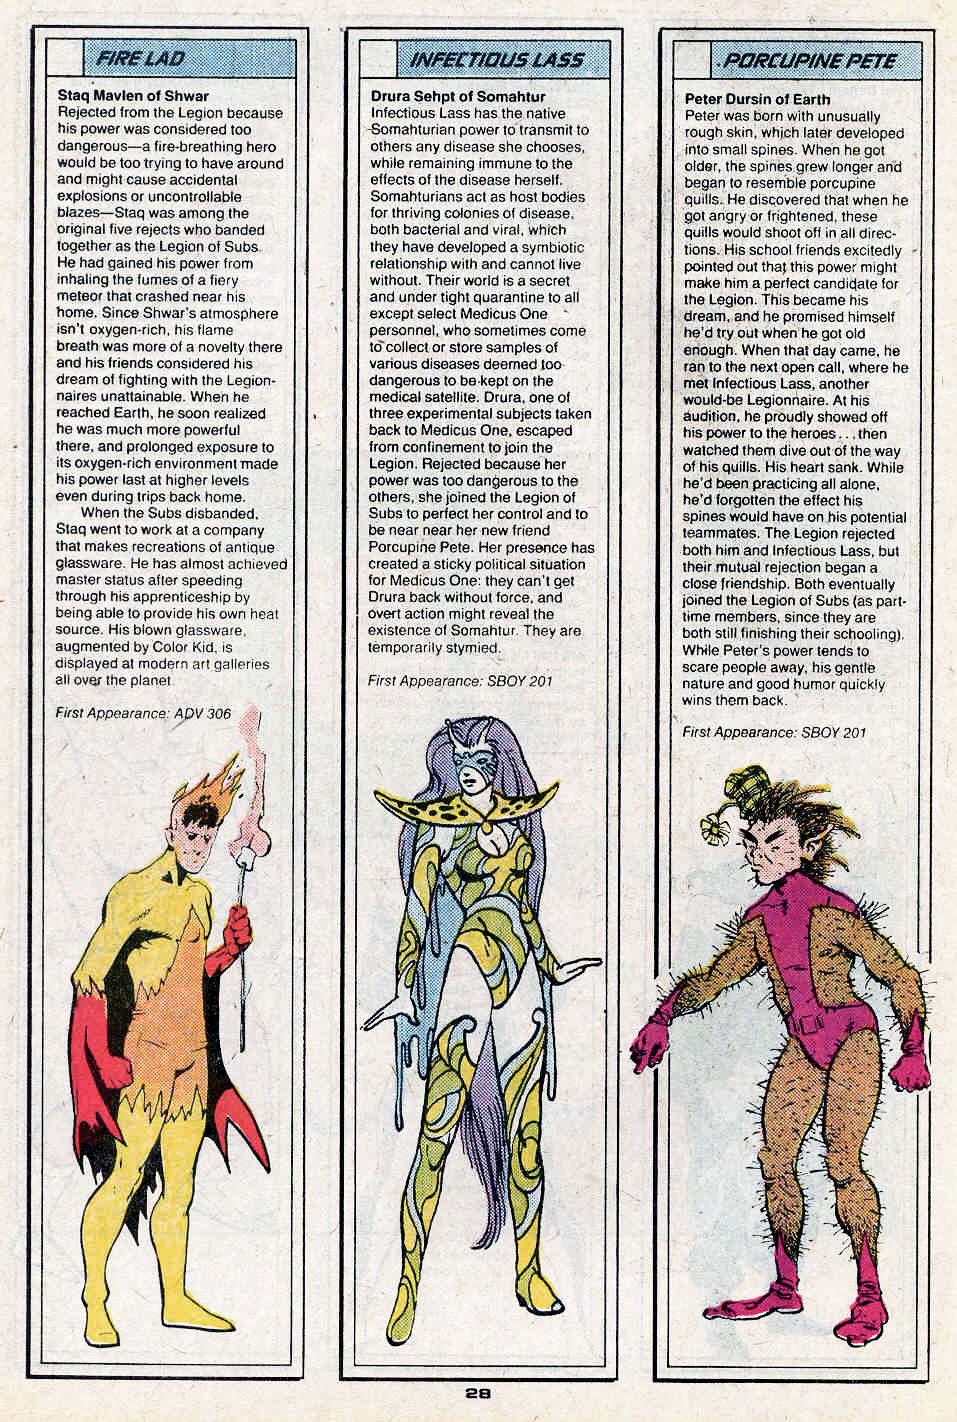 Fire Lad by Ty Templeton, Infectious Lass by Colleen Doran, and Porcupine Pete by Stephen DeStefano - Who's Who in the Legion of Super-Heroes #3